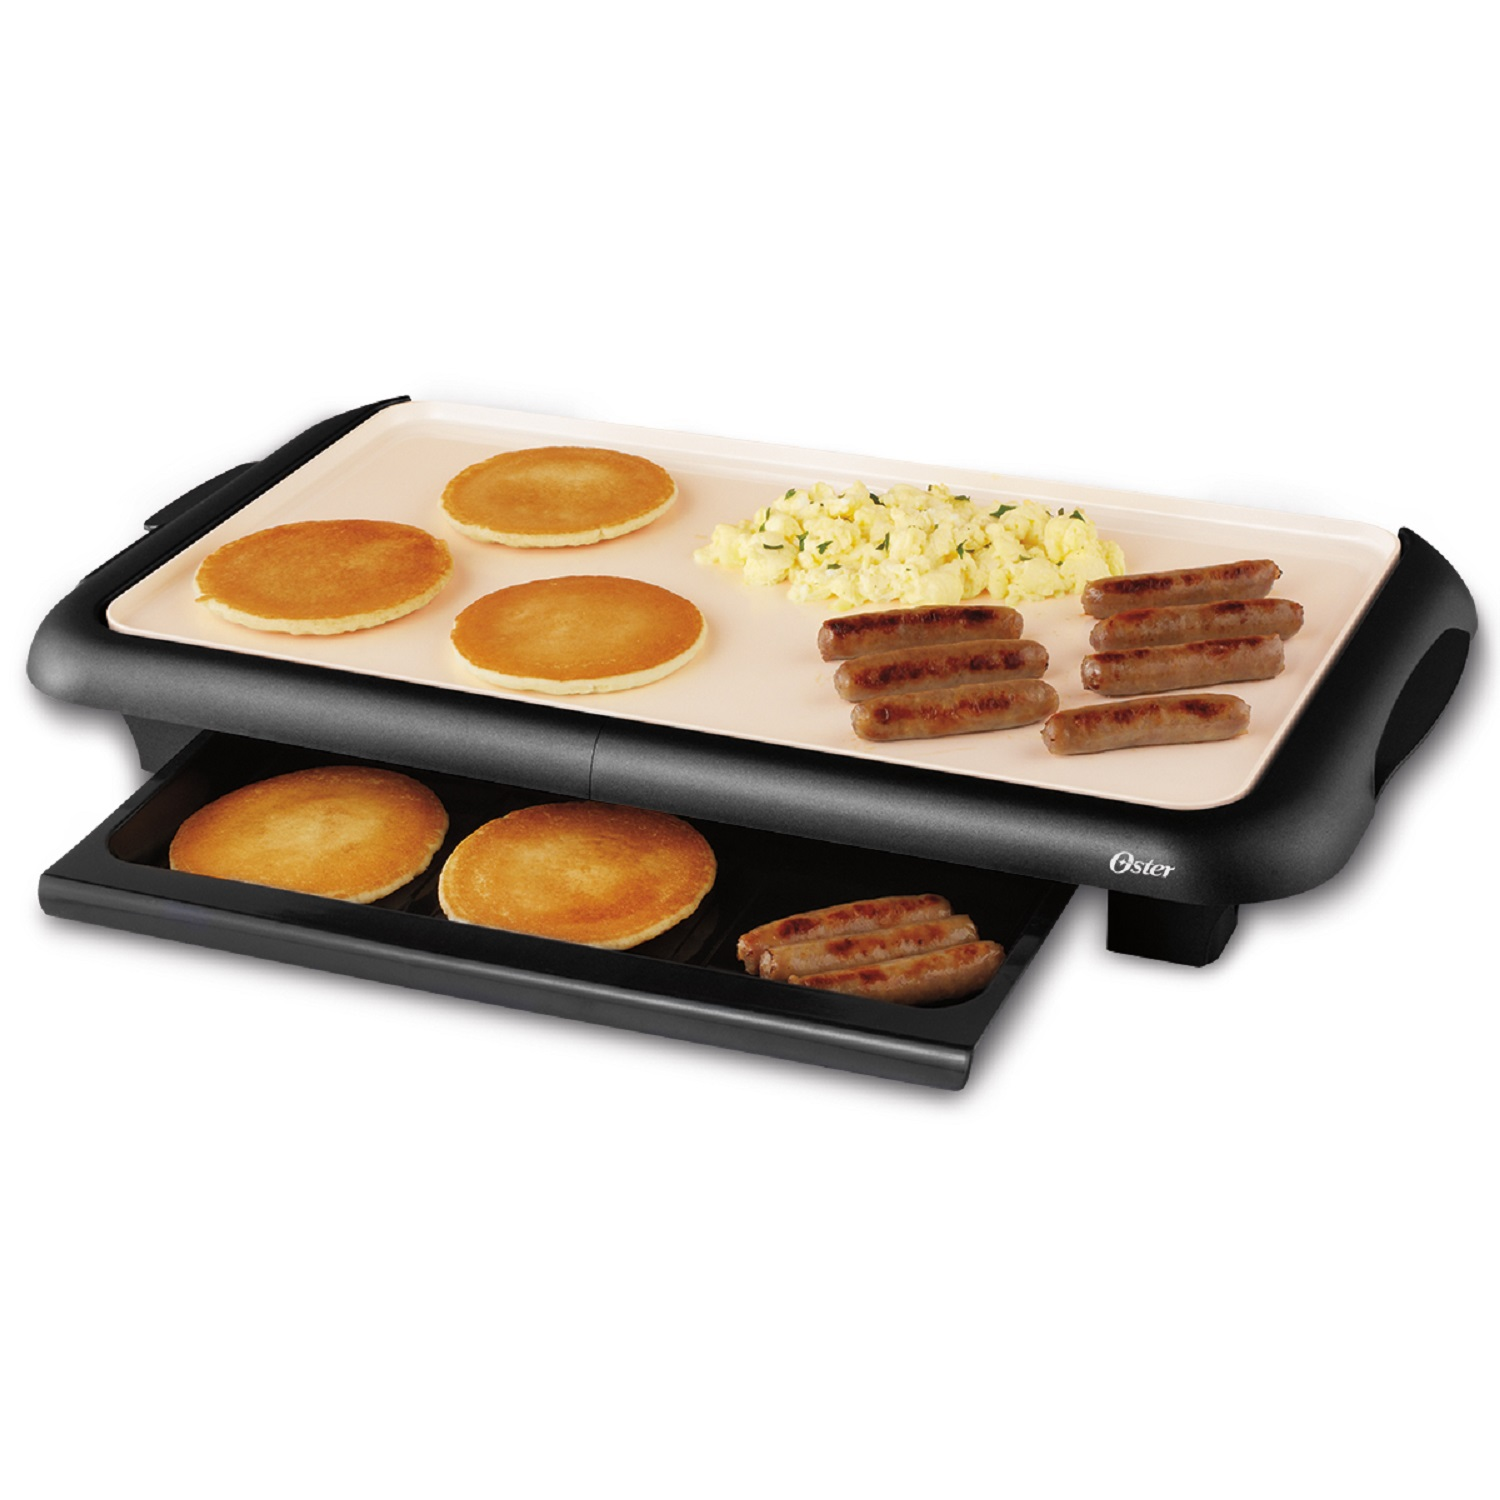 OSTER CKSTGRFM18W-ECO Electric Griddle With Warming Tray 6-1/2 in W x 14 in D x 10 in H, Black/Cream